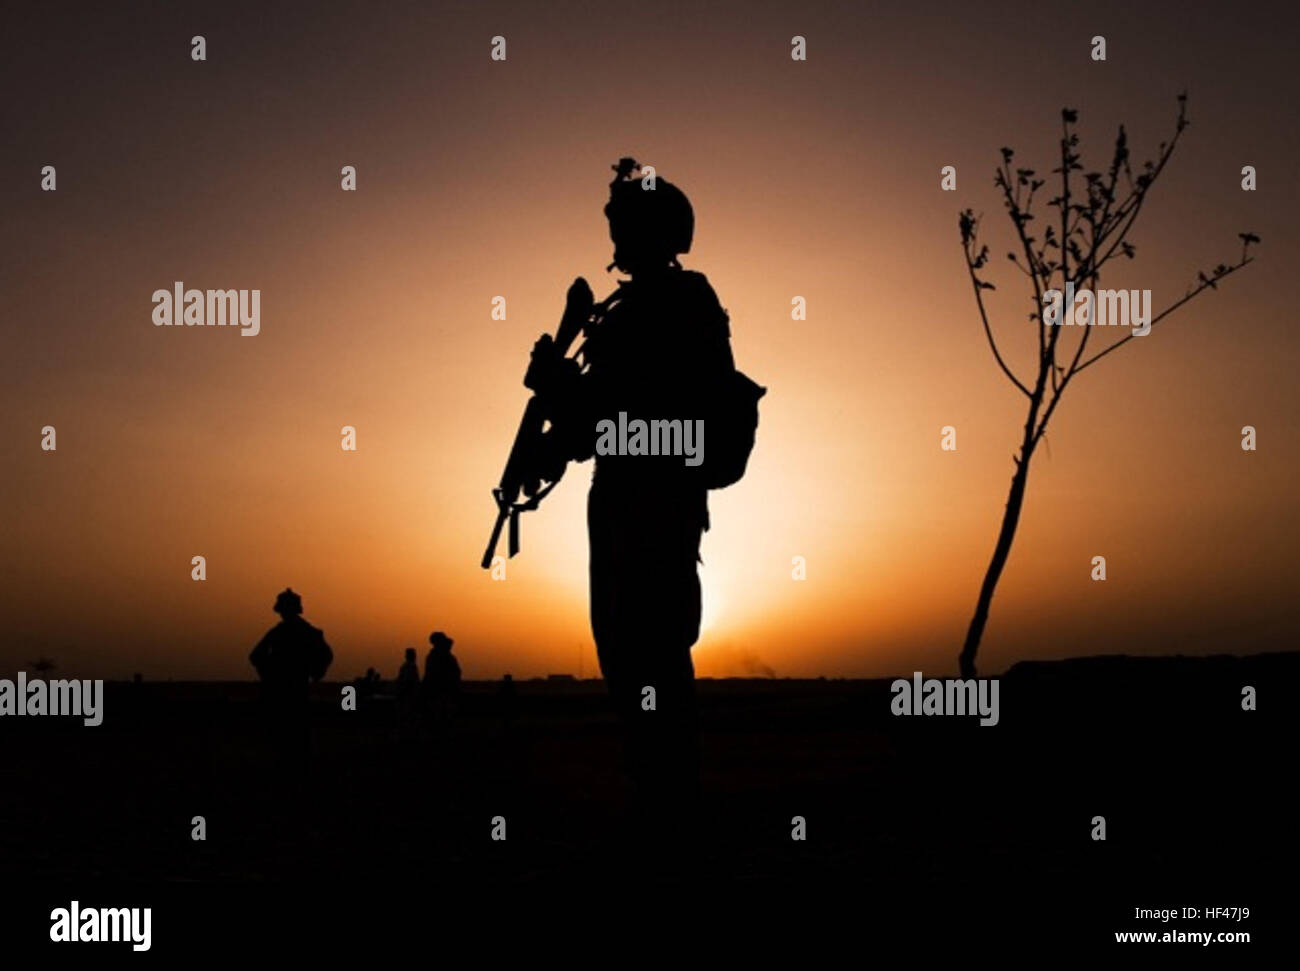 Flickr - DVIDSHUB - Birth of a Motto, in Helmand Province, 3-3 H5ES Marines Prove Their Versatility, Mettle - Stock Image